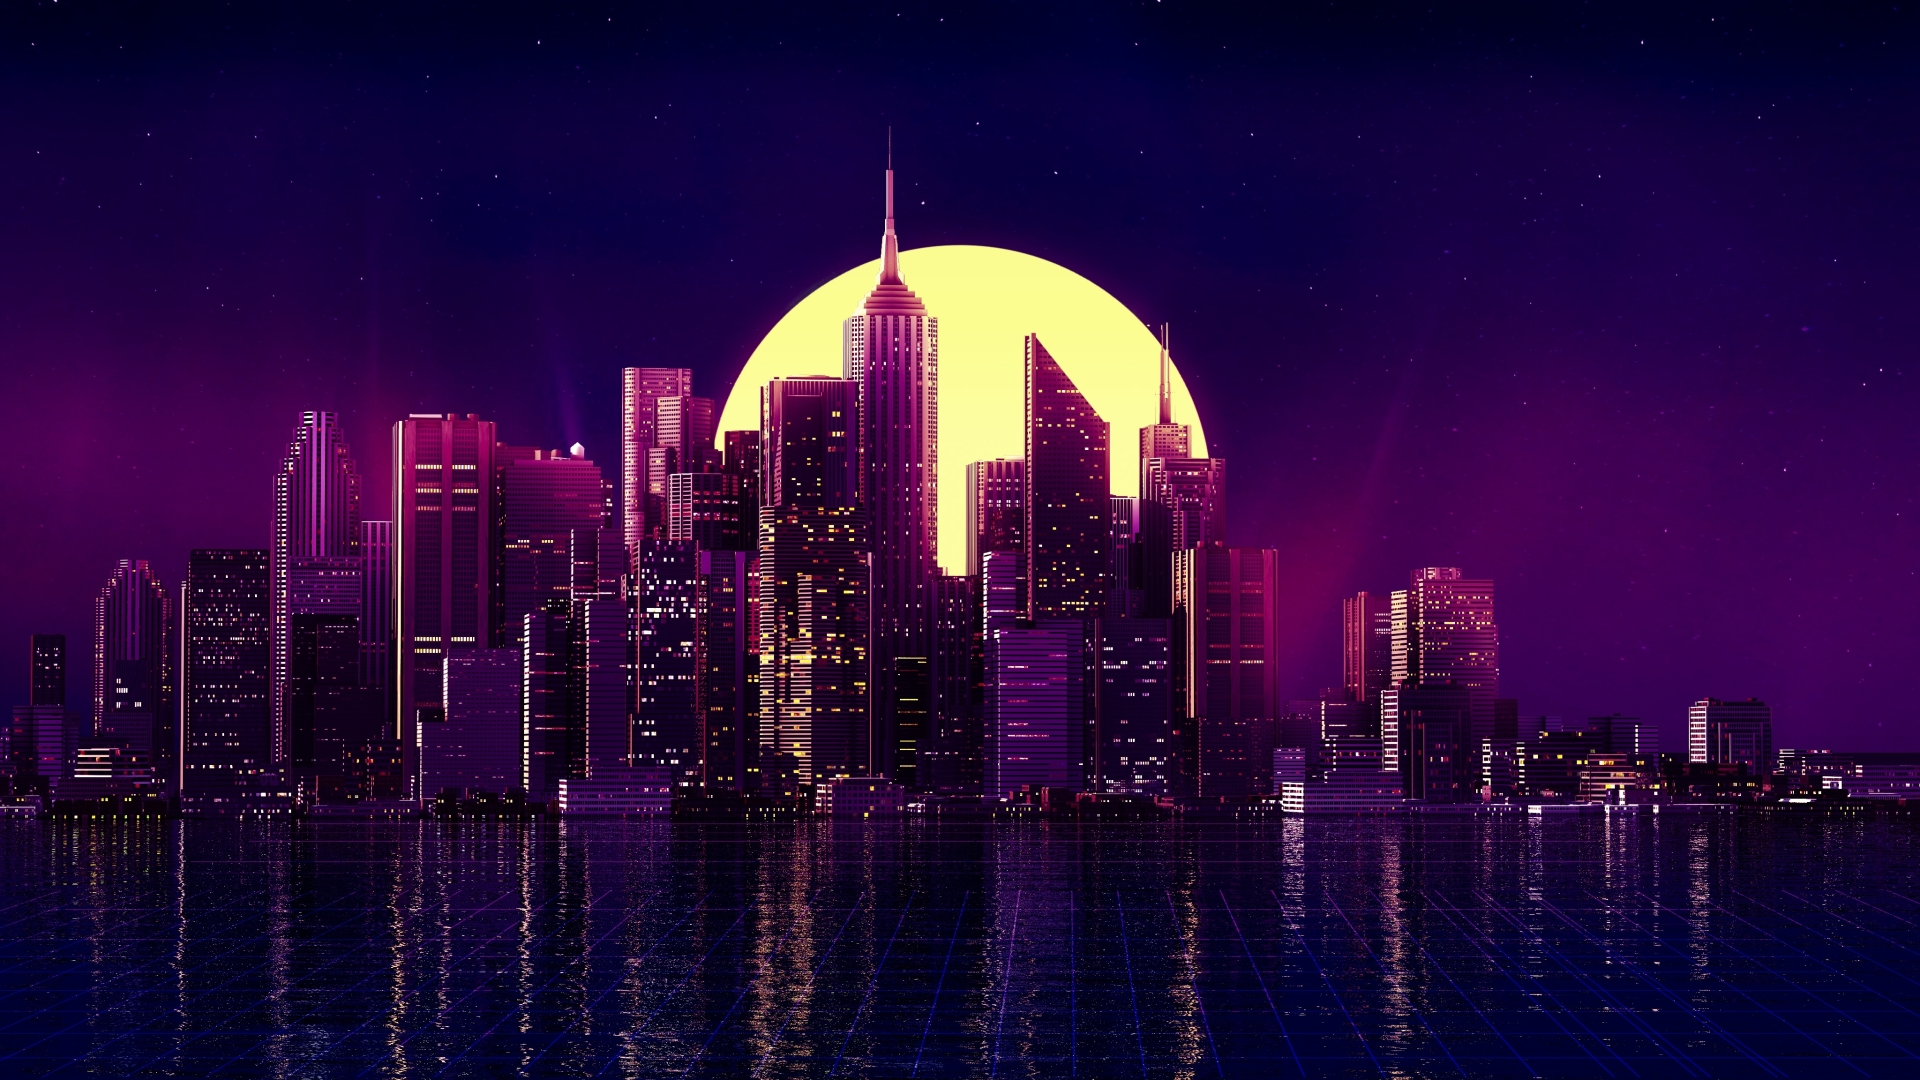 1920x1080 Neon New York City 1080p Laptop Full Hd Wallpaper Hd City 4k Wallpapers Images Photos And Background